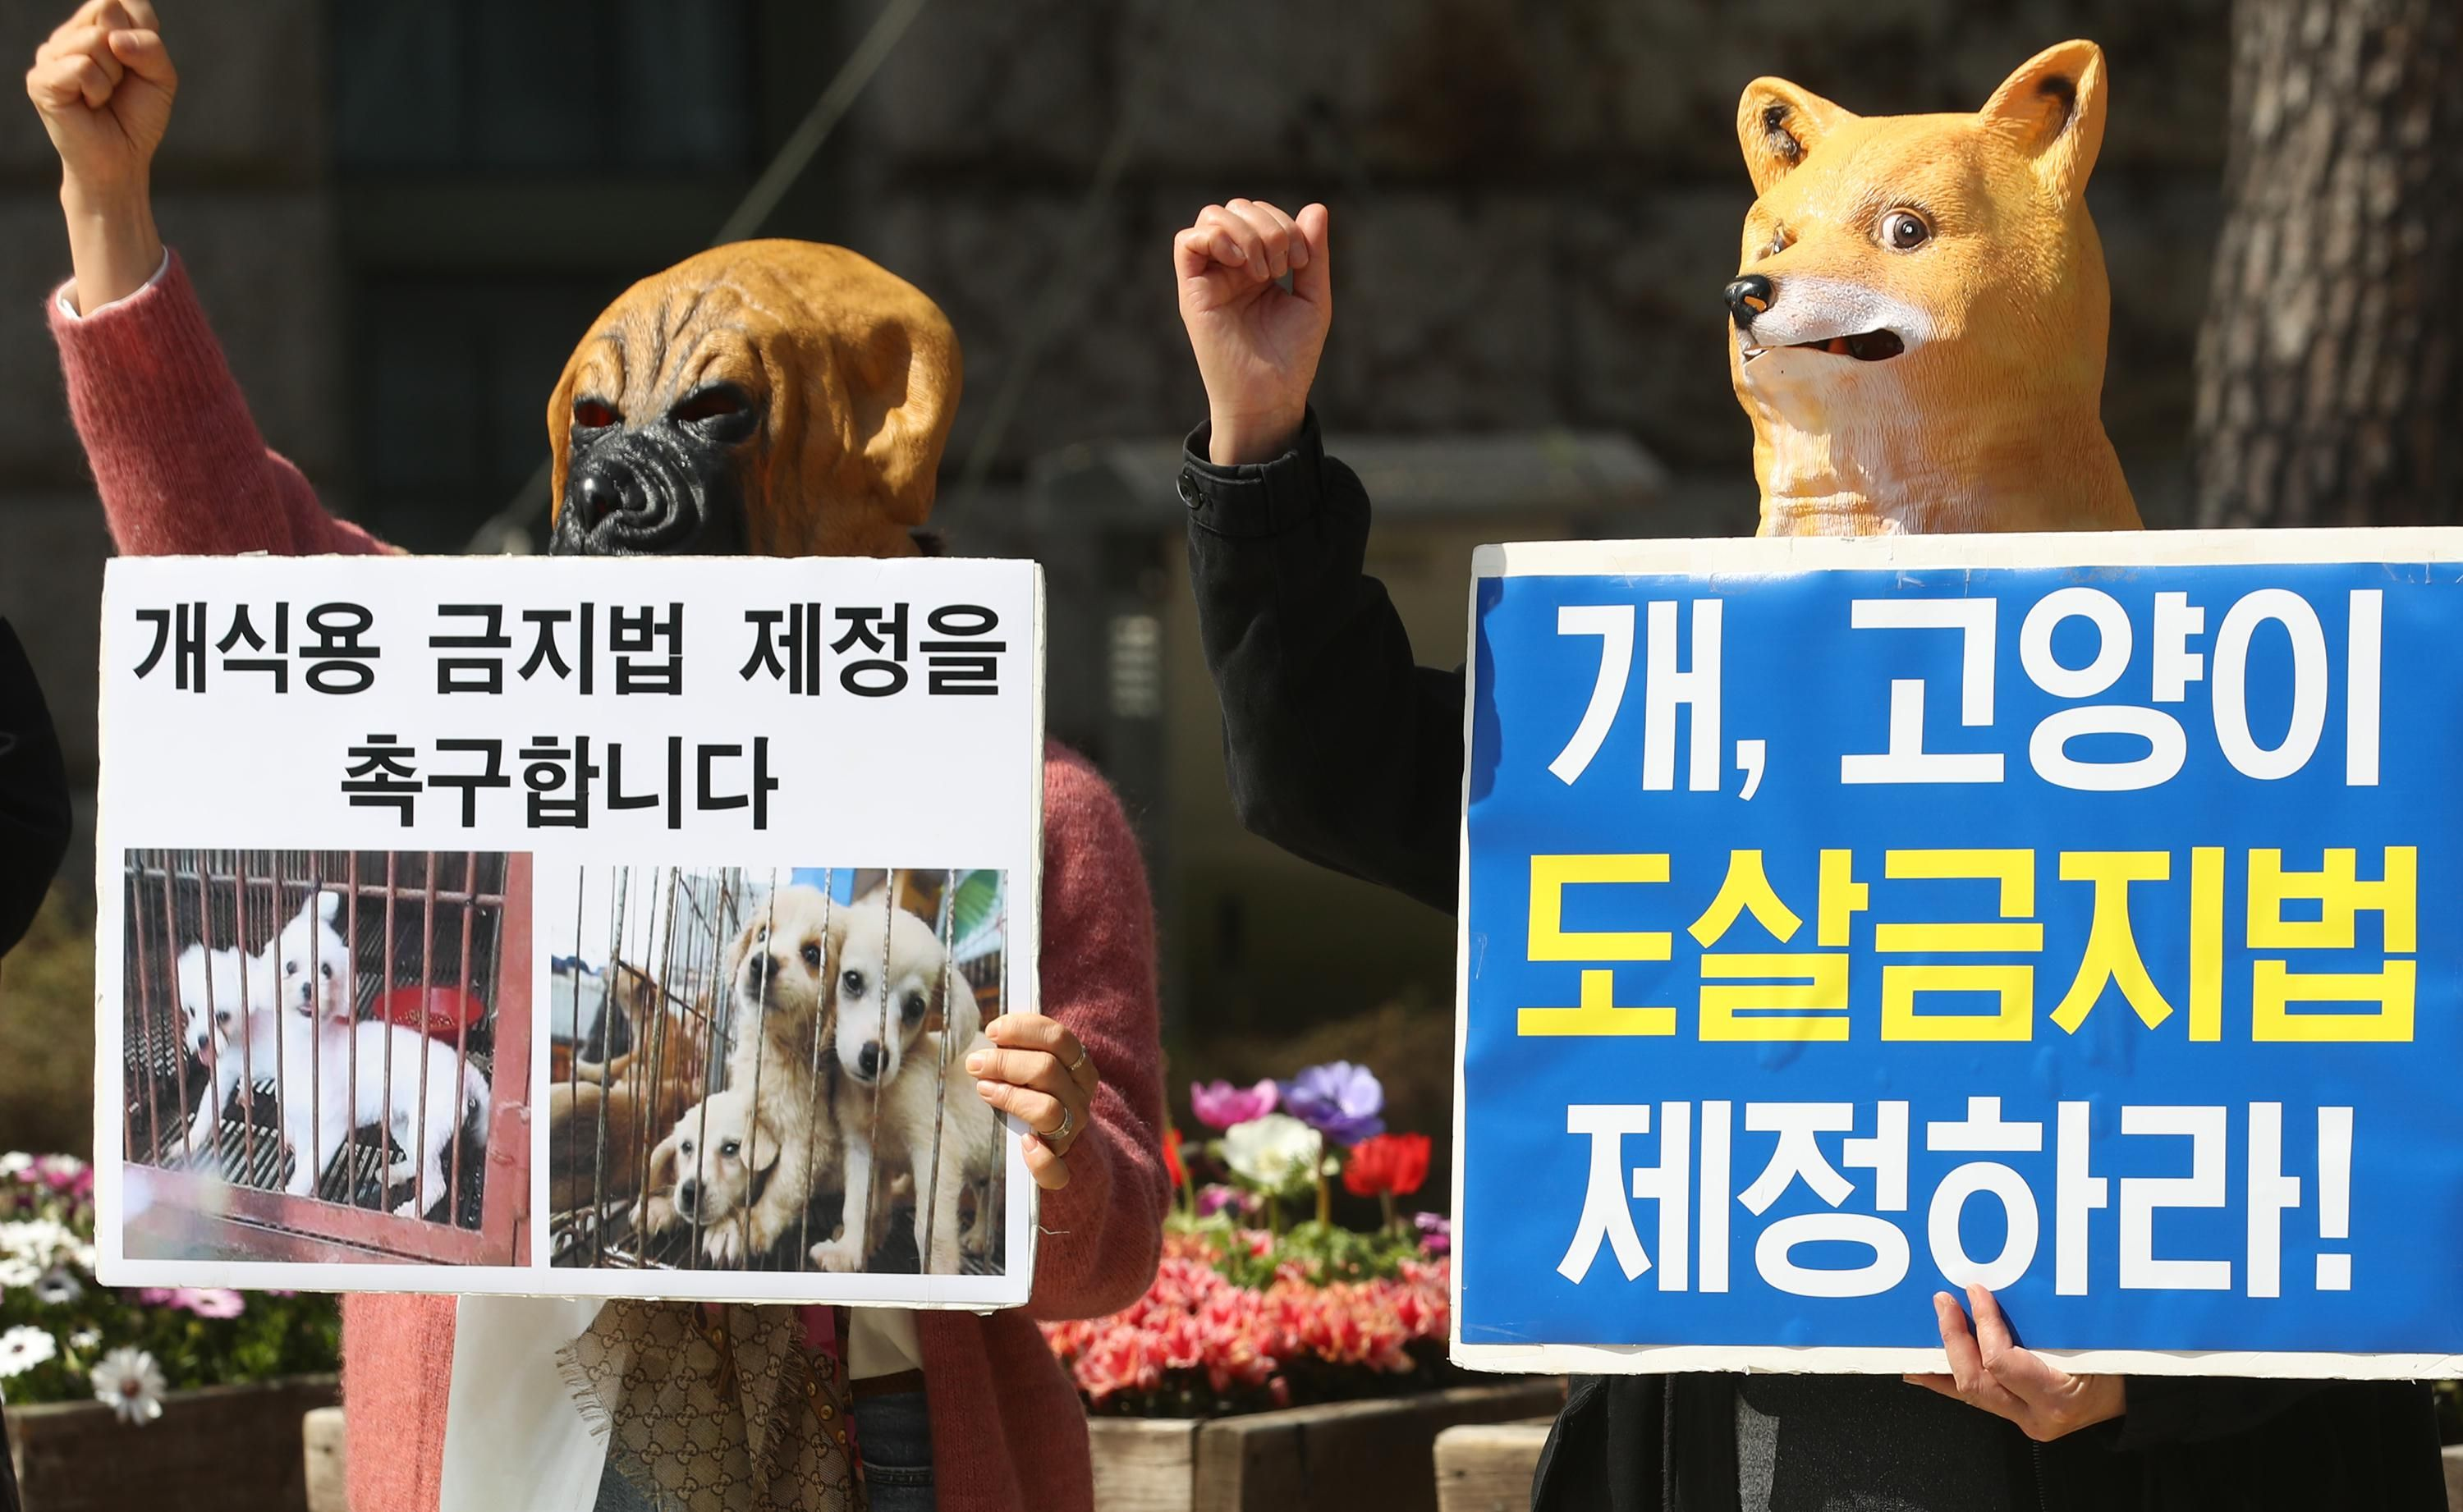 Members of the Korea Association for the Protection of Animals, an animal rights group, meet in Seoul on April 6, 2020 to call for the enactment of a law prohibiting trade and eating cat and dog meat.